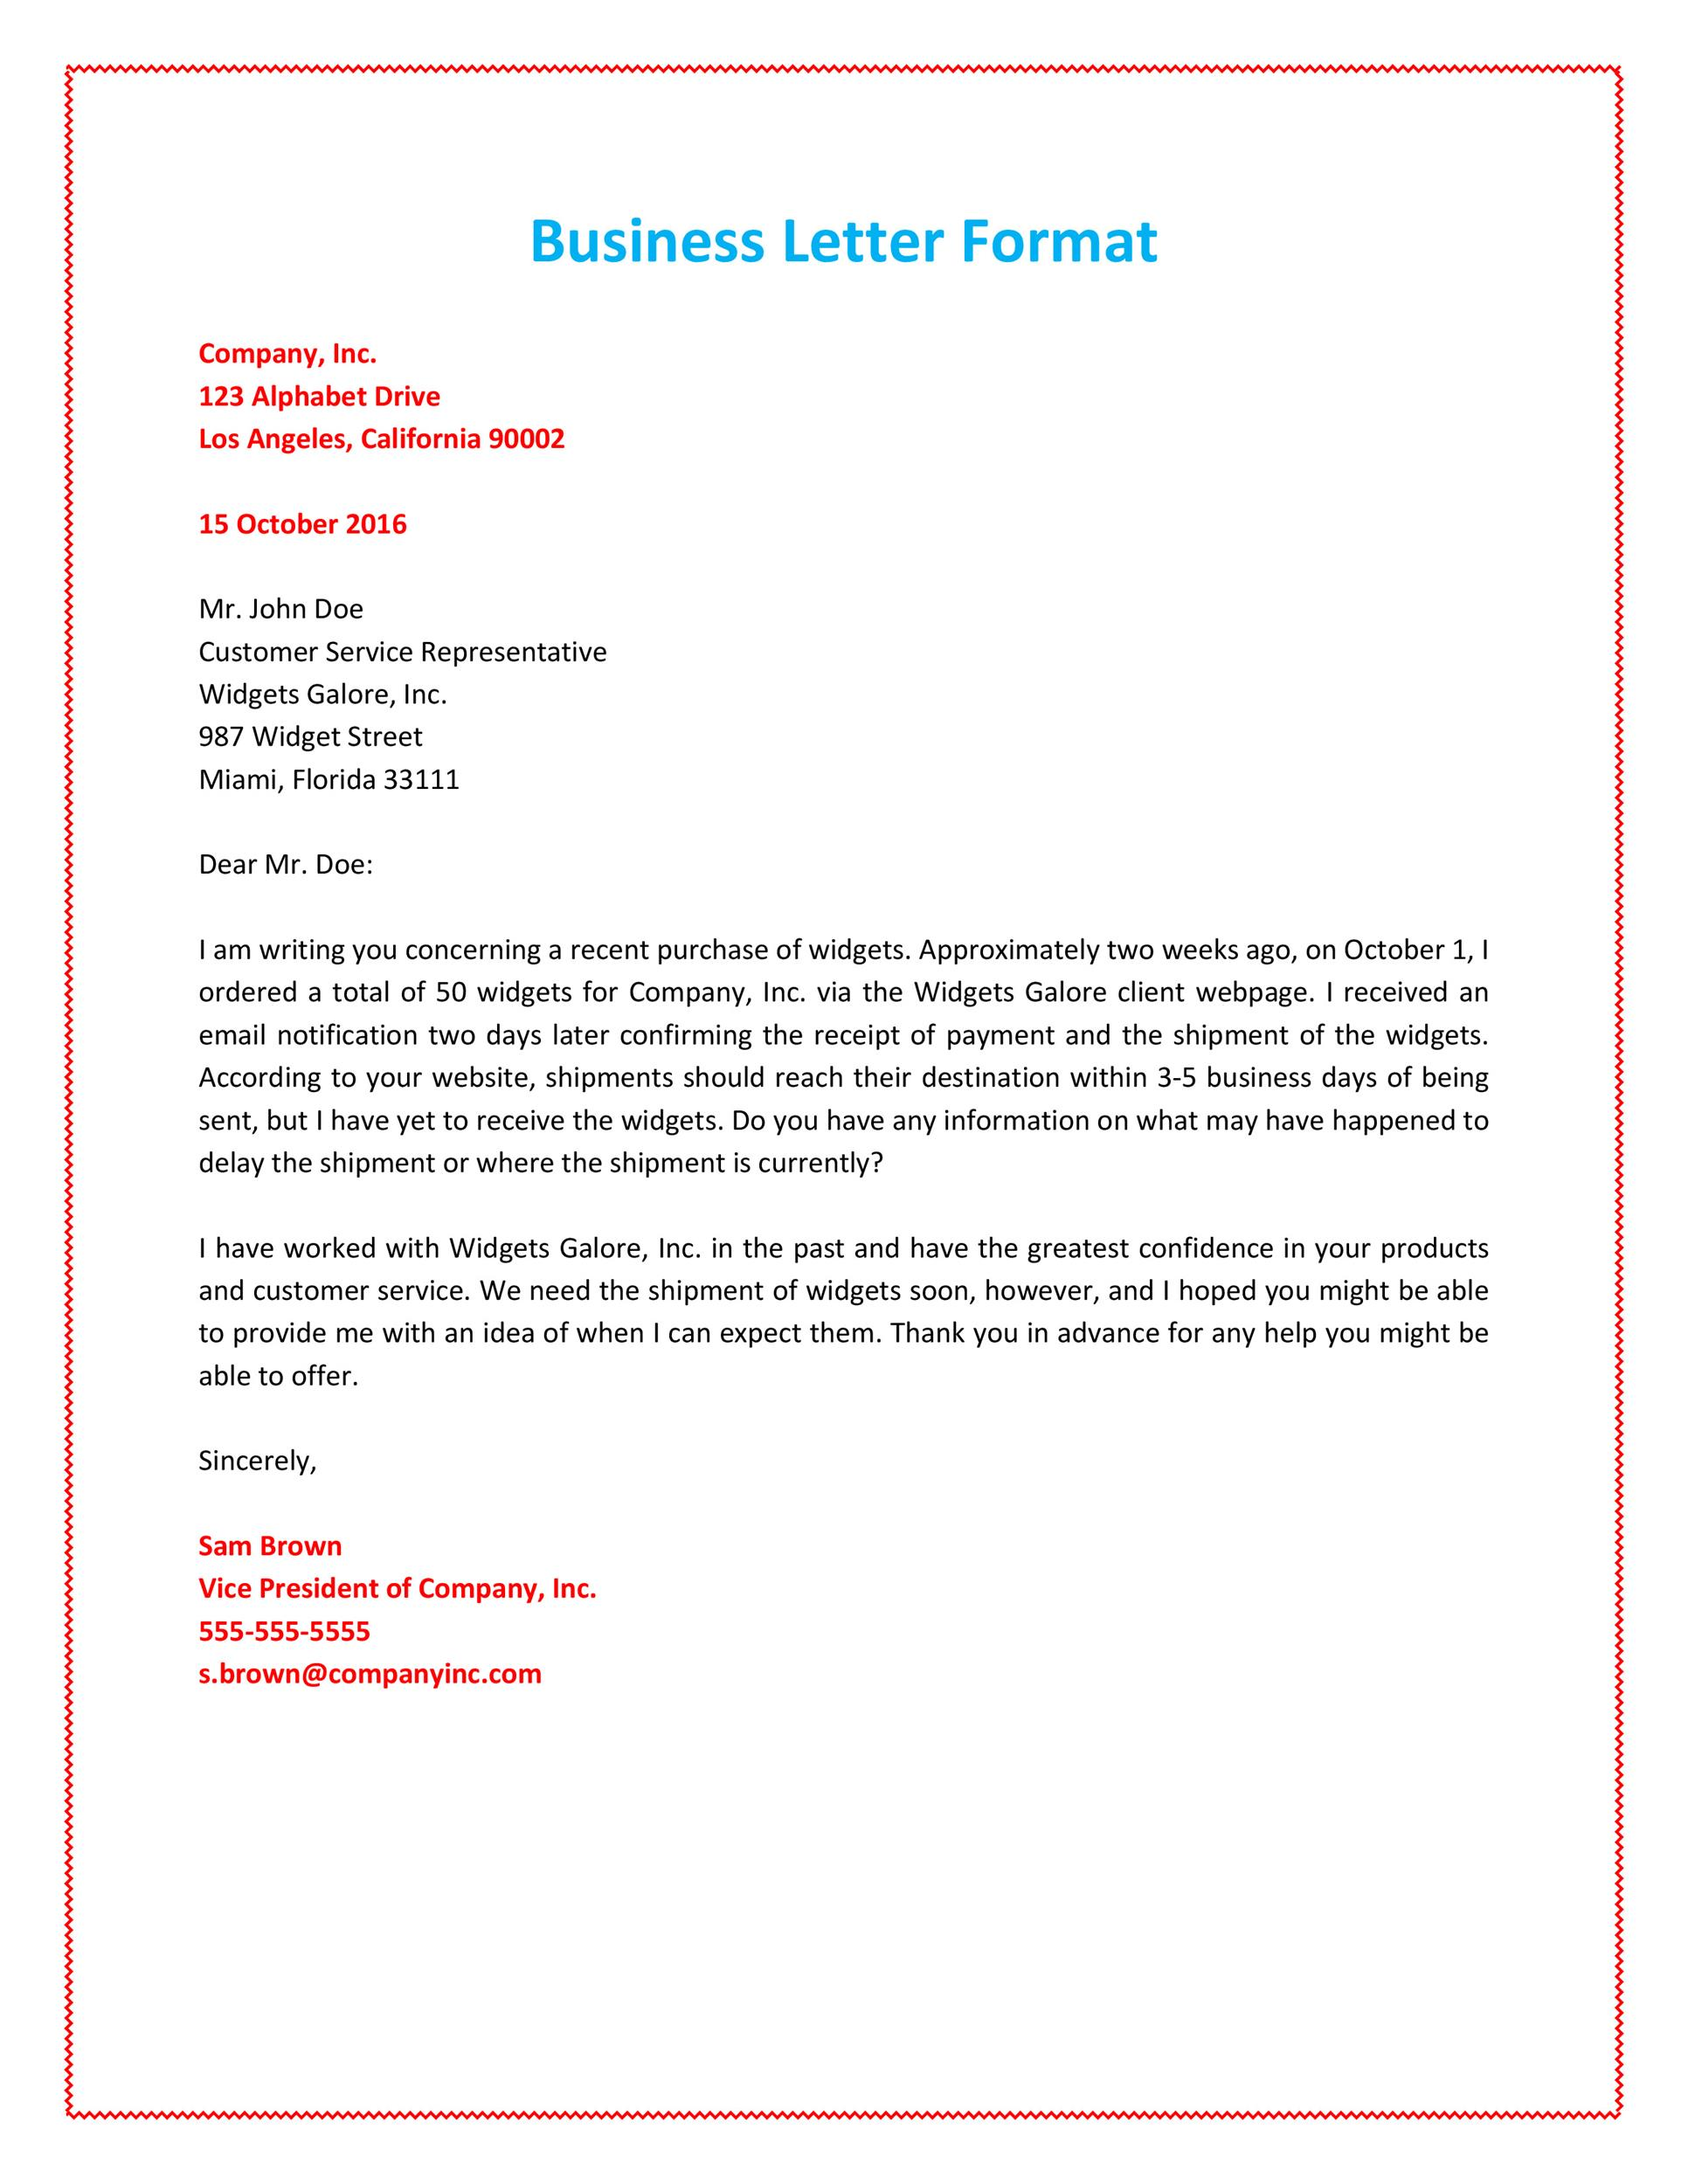 formal business letter format templates examples template lab business letter format example formal business letter 01